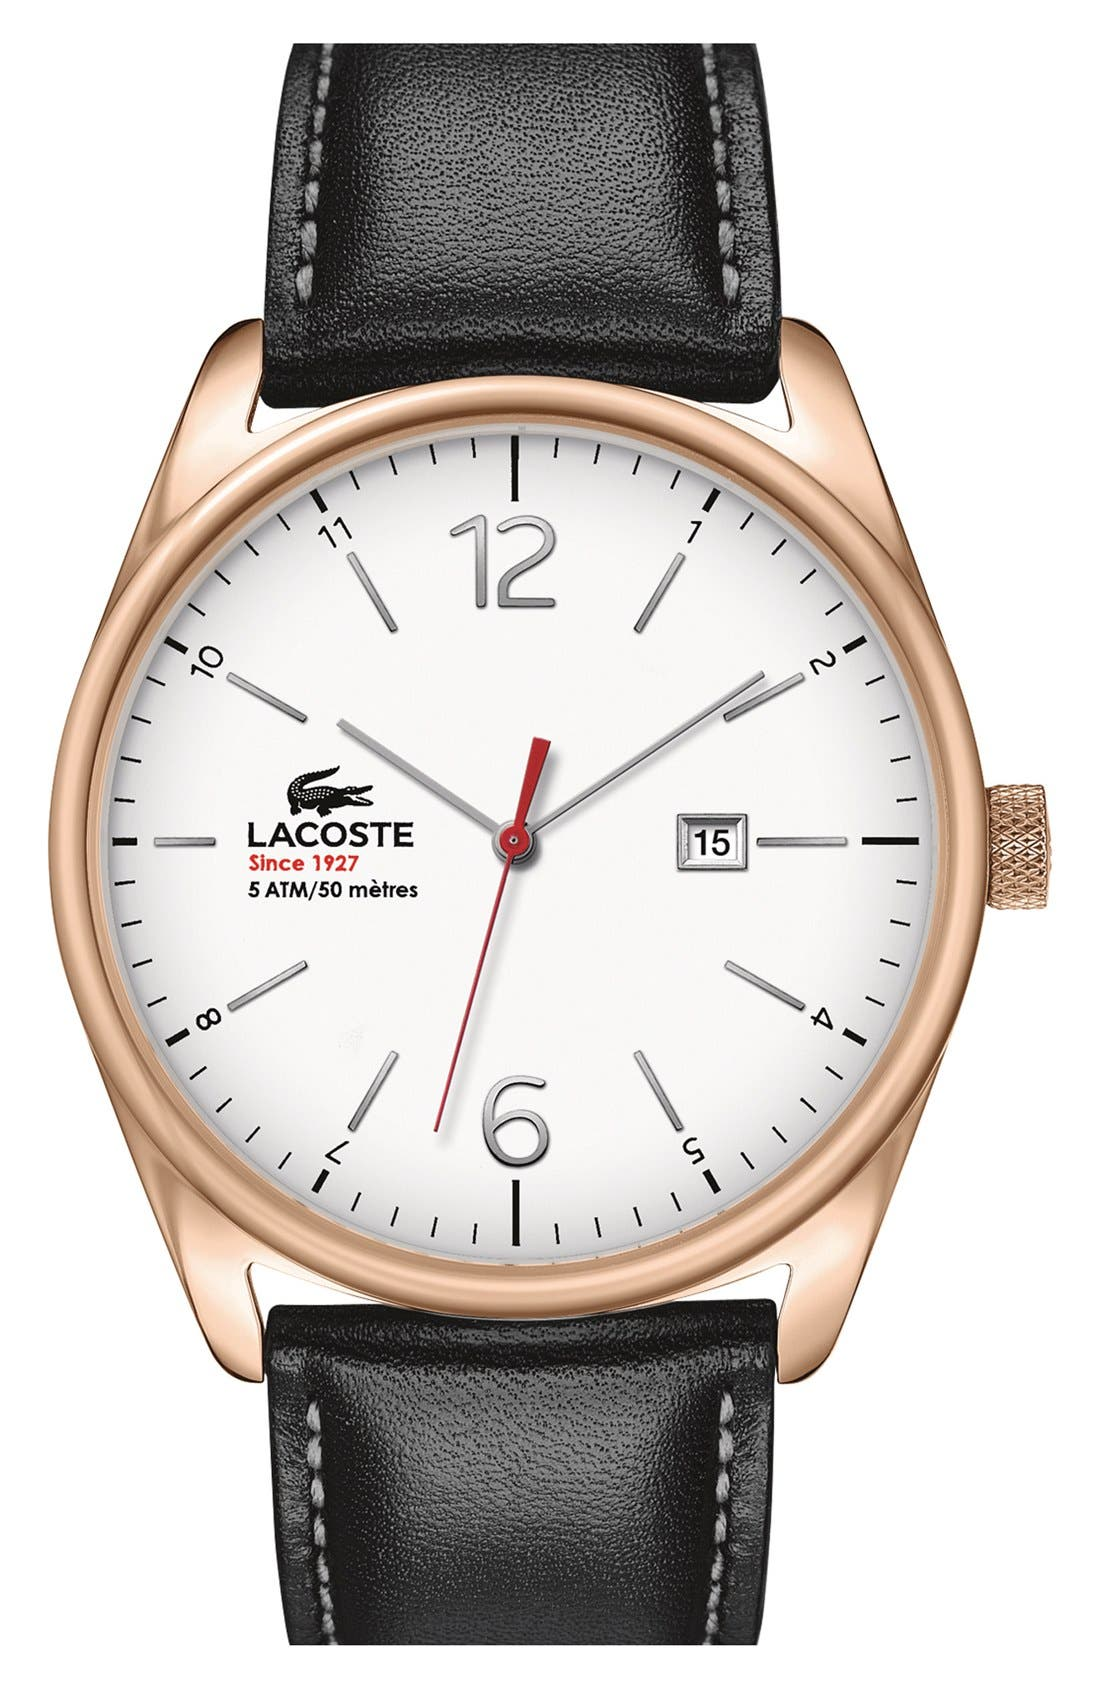 Main Image - Lacoste 'Austin' Leather Strap Watch, 44mm